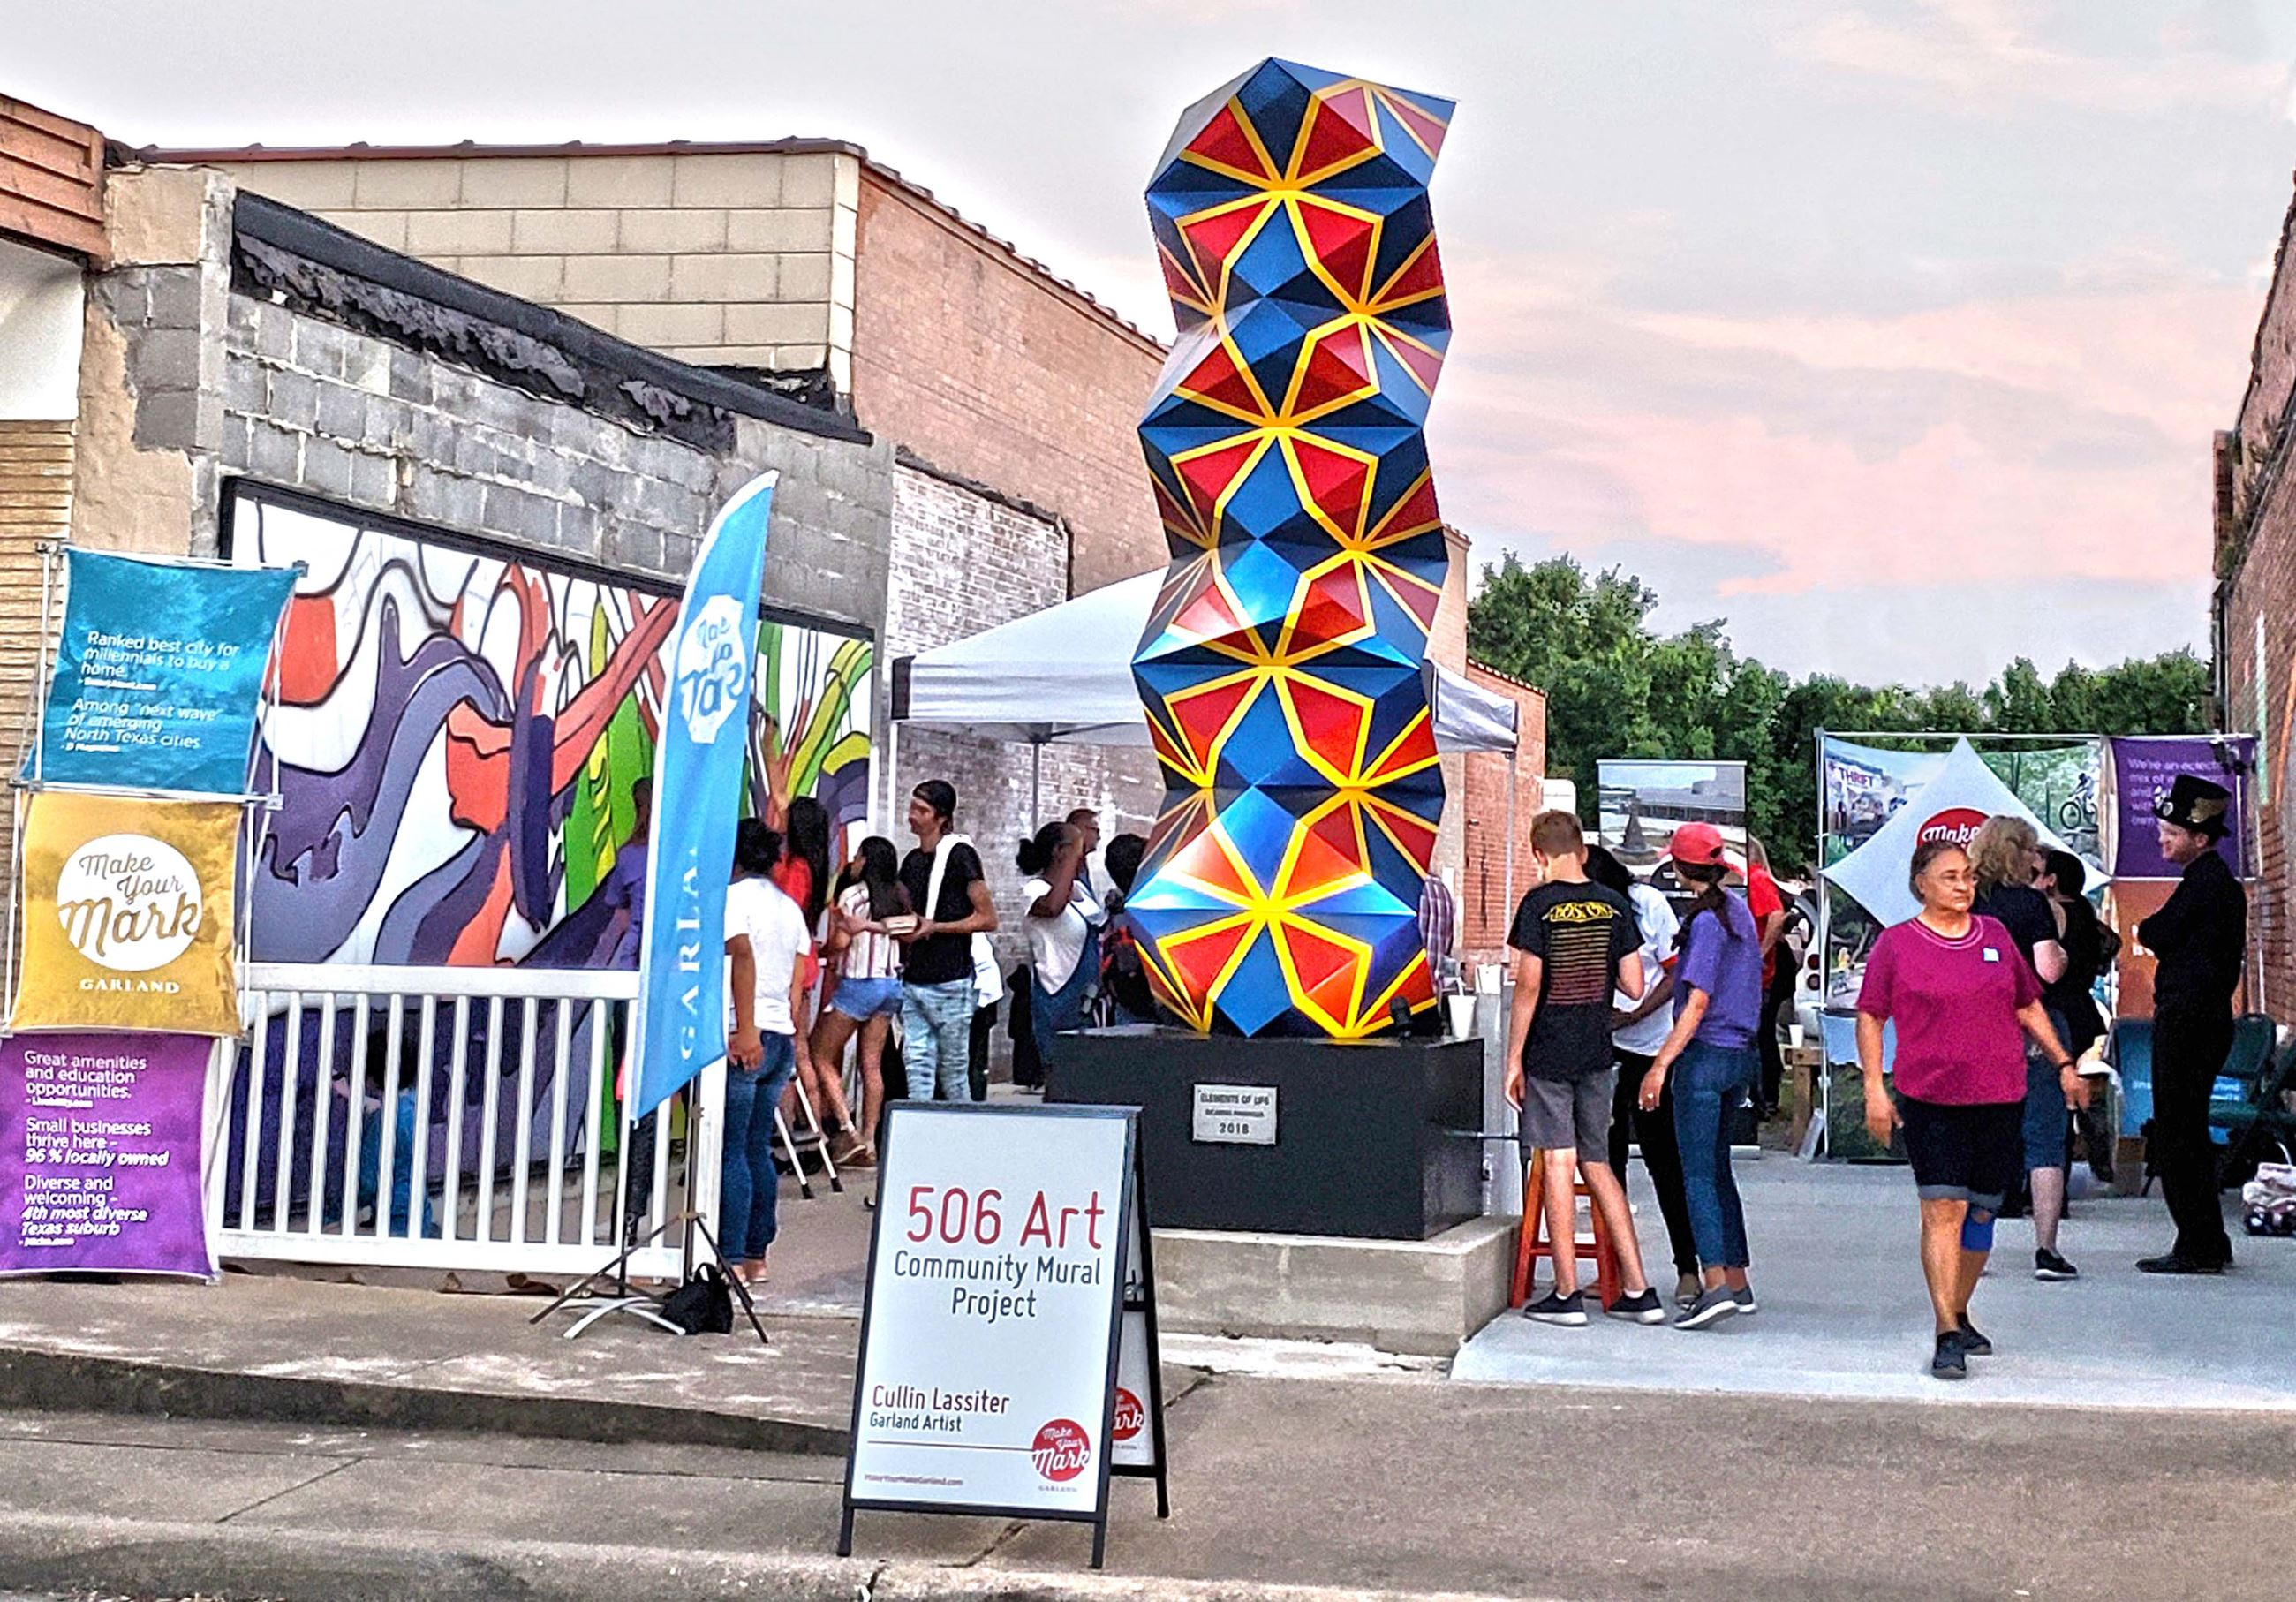 506 Art in Downtown Garland